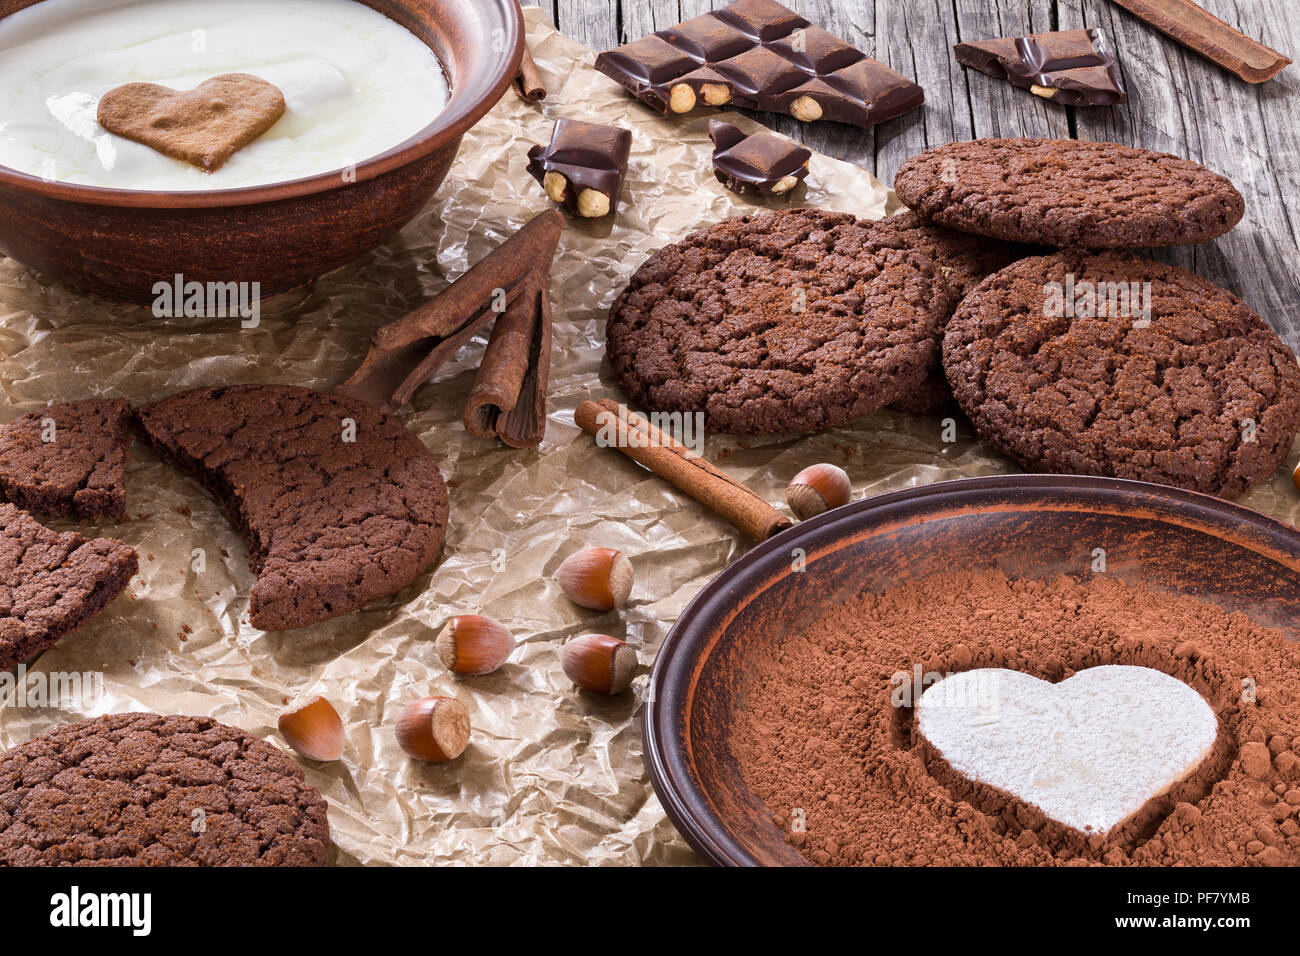 Chocolate cookies, chocolate with hazelnuts on a parchment paper, close-up - Stock Image